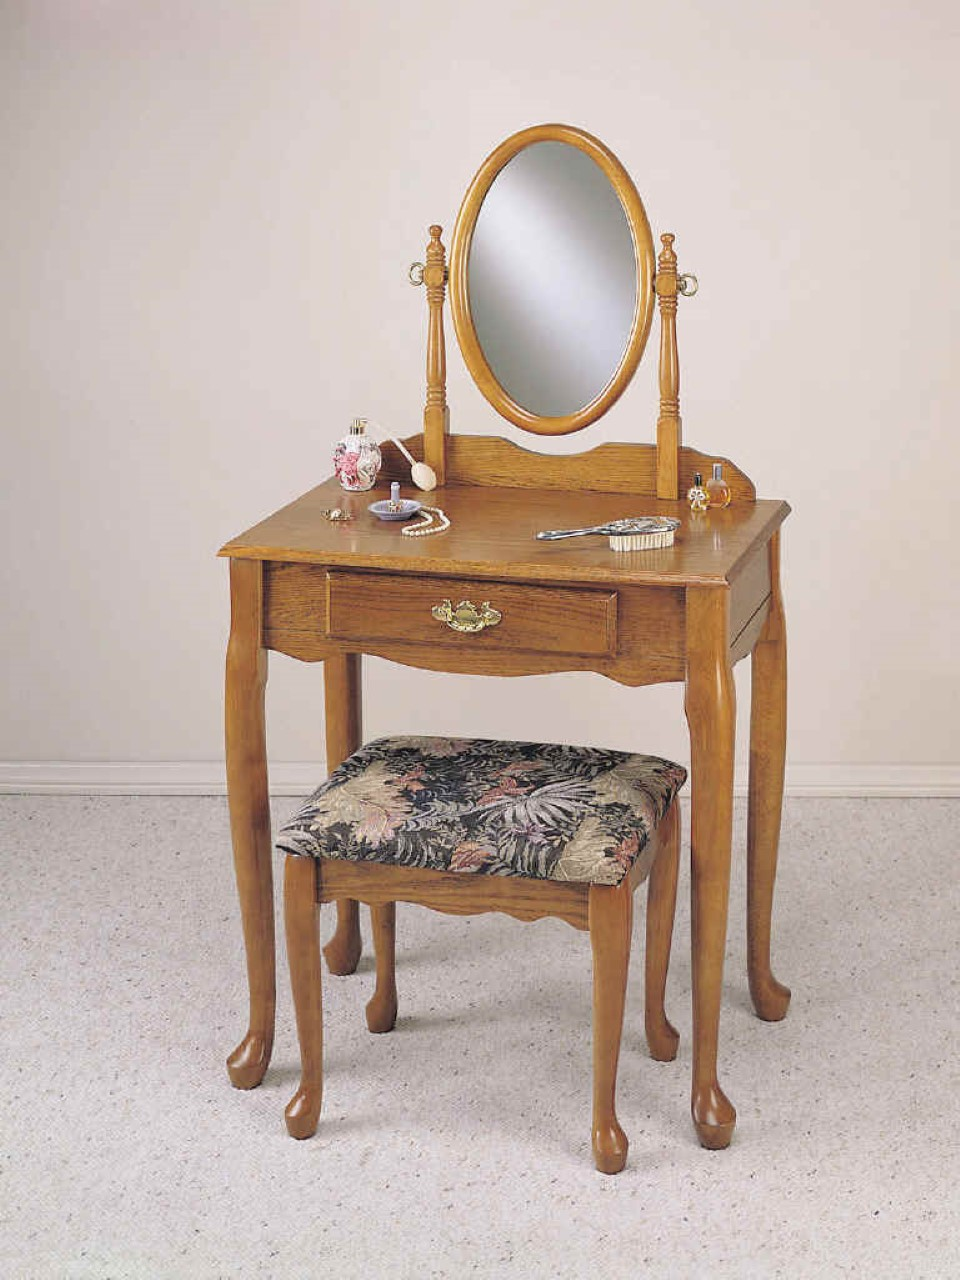 Enchanting Vanity Seat Covers Pictures - Best image 3D home ...